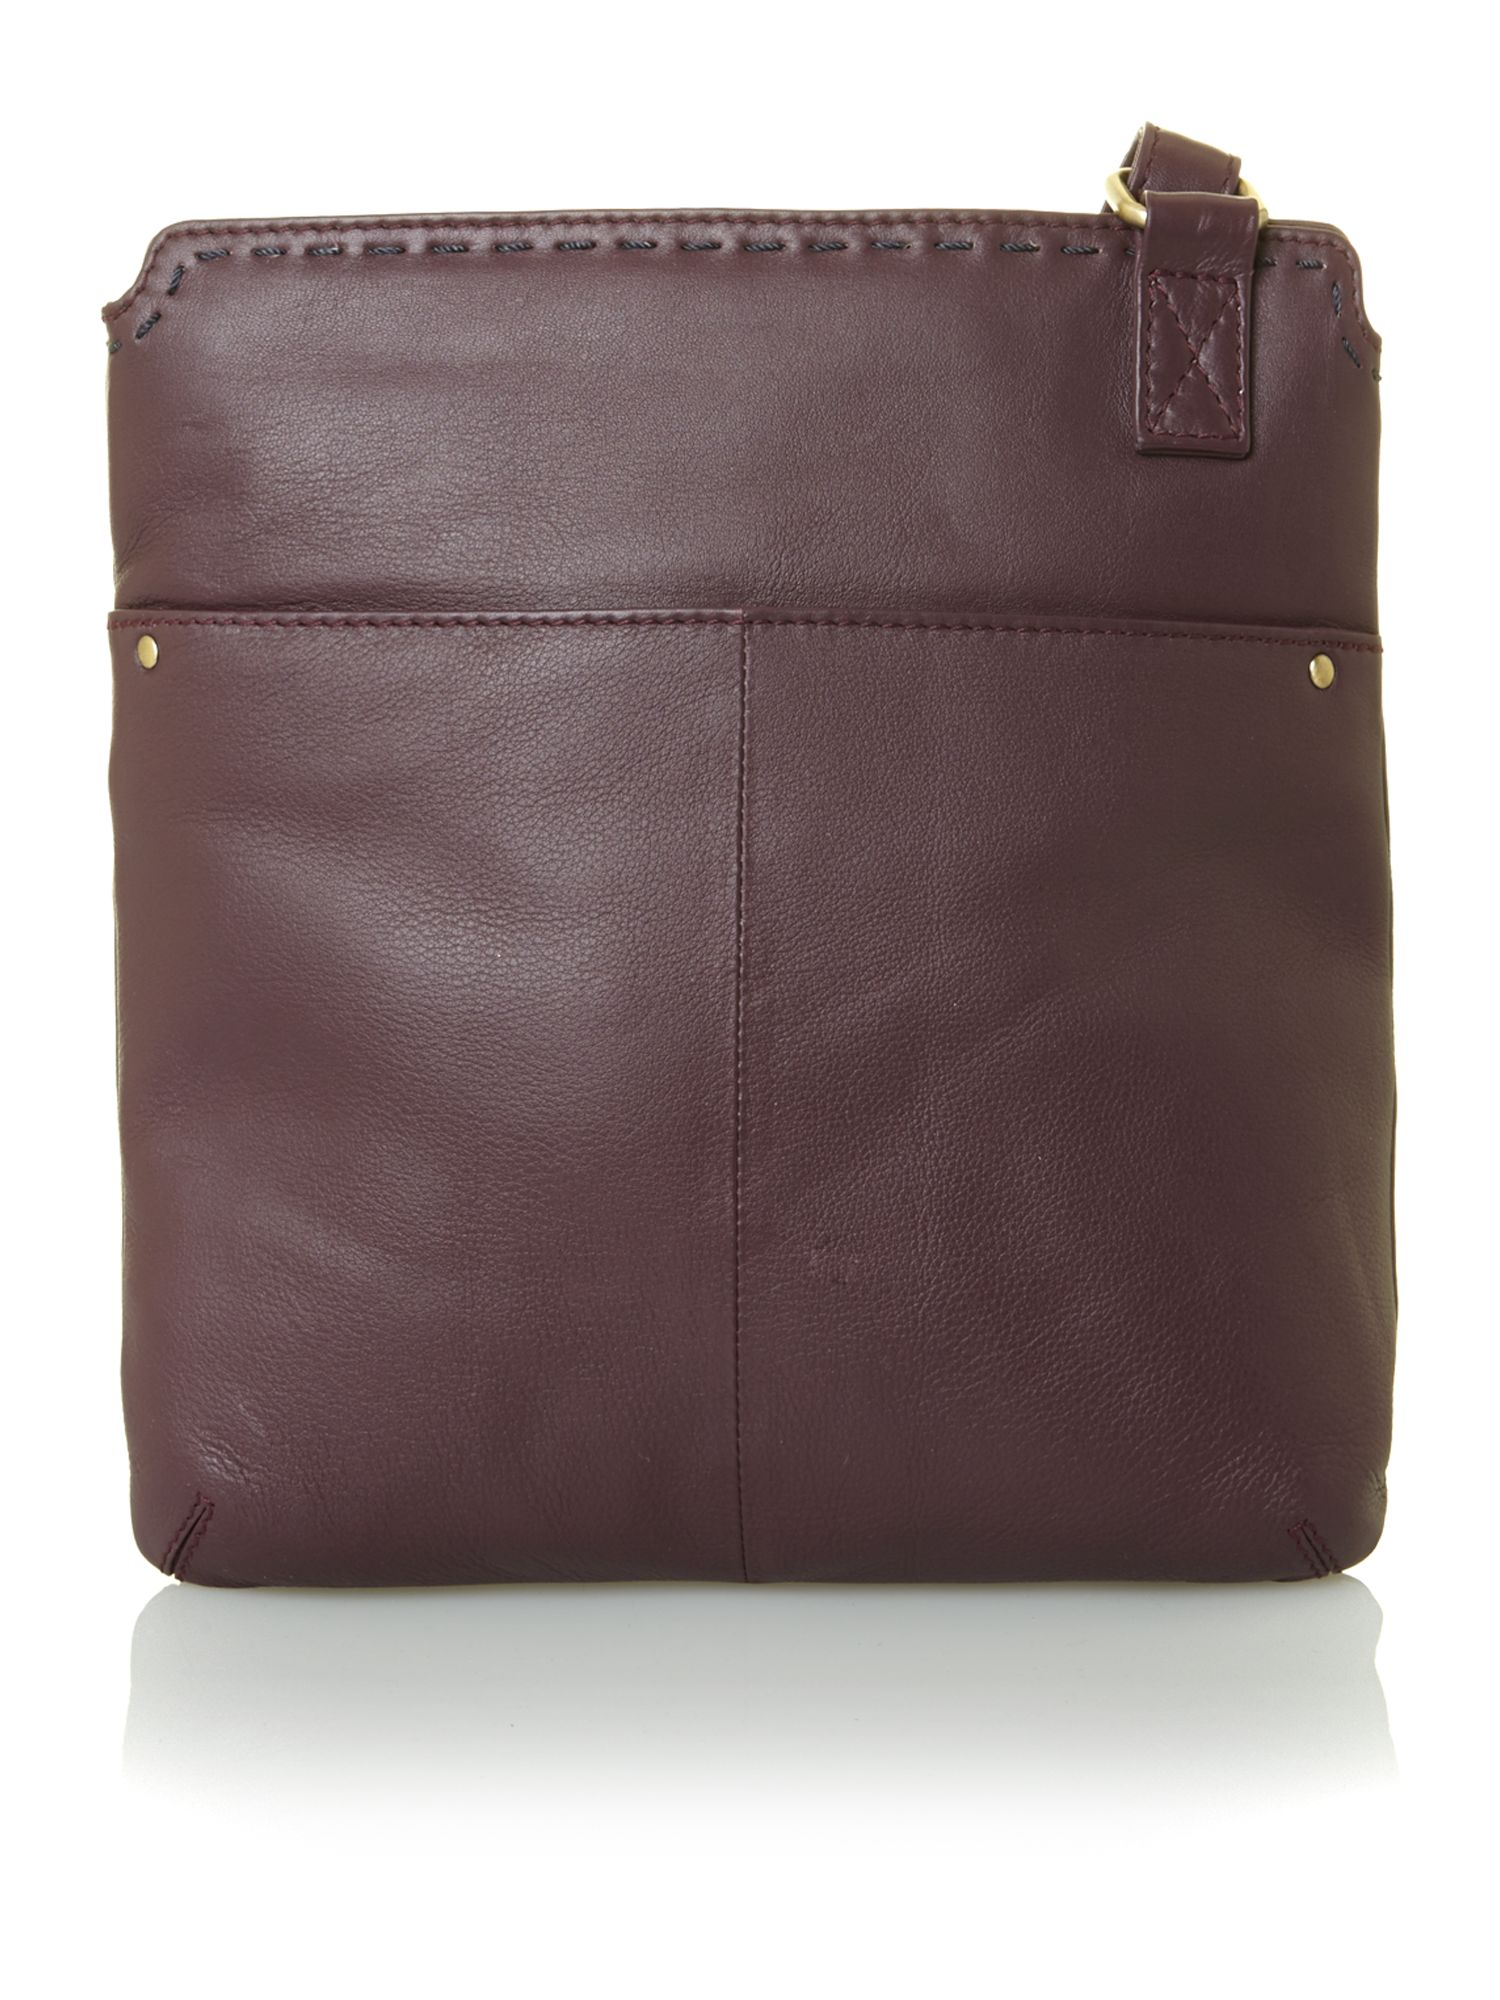 Yorkshire small cross body bag